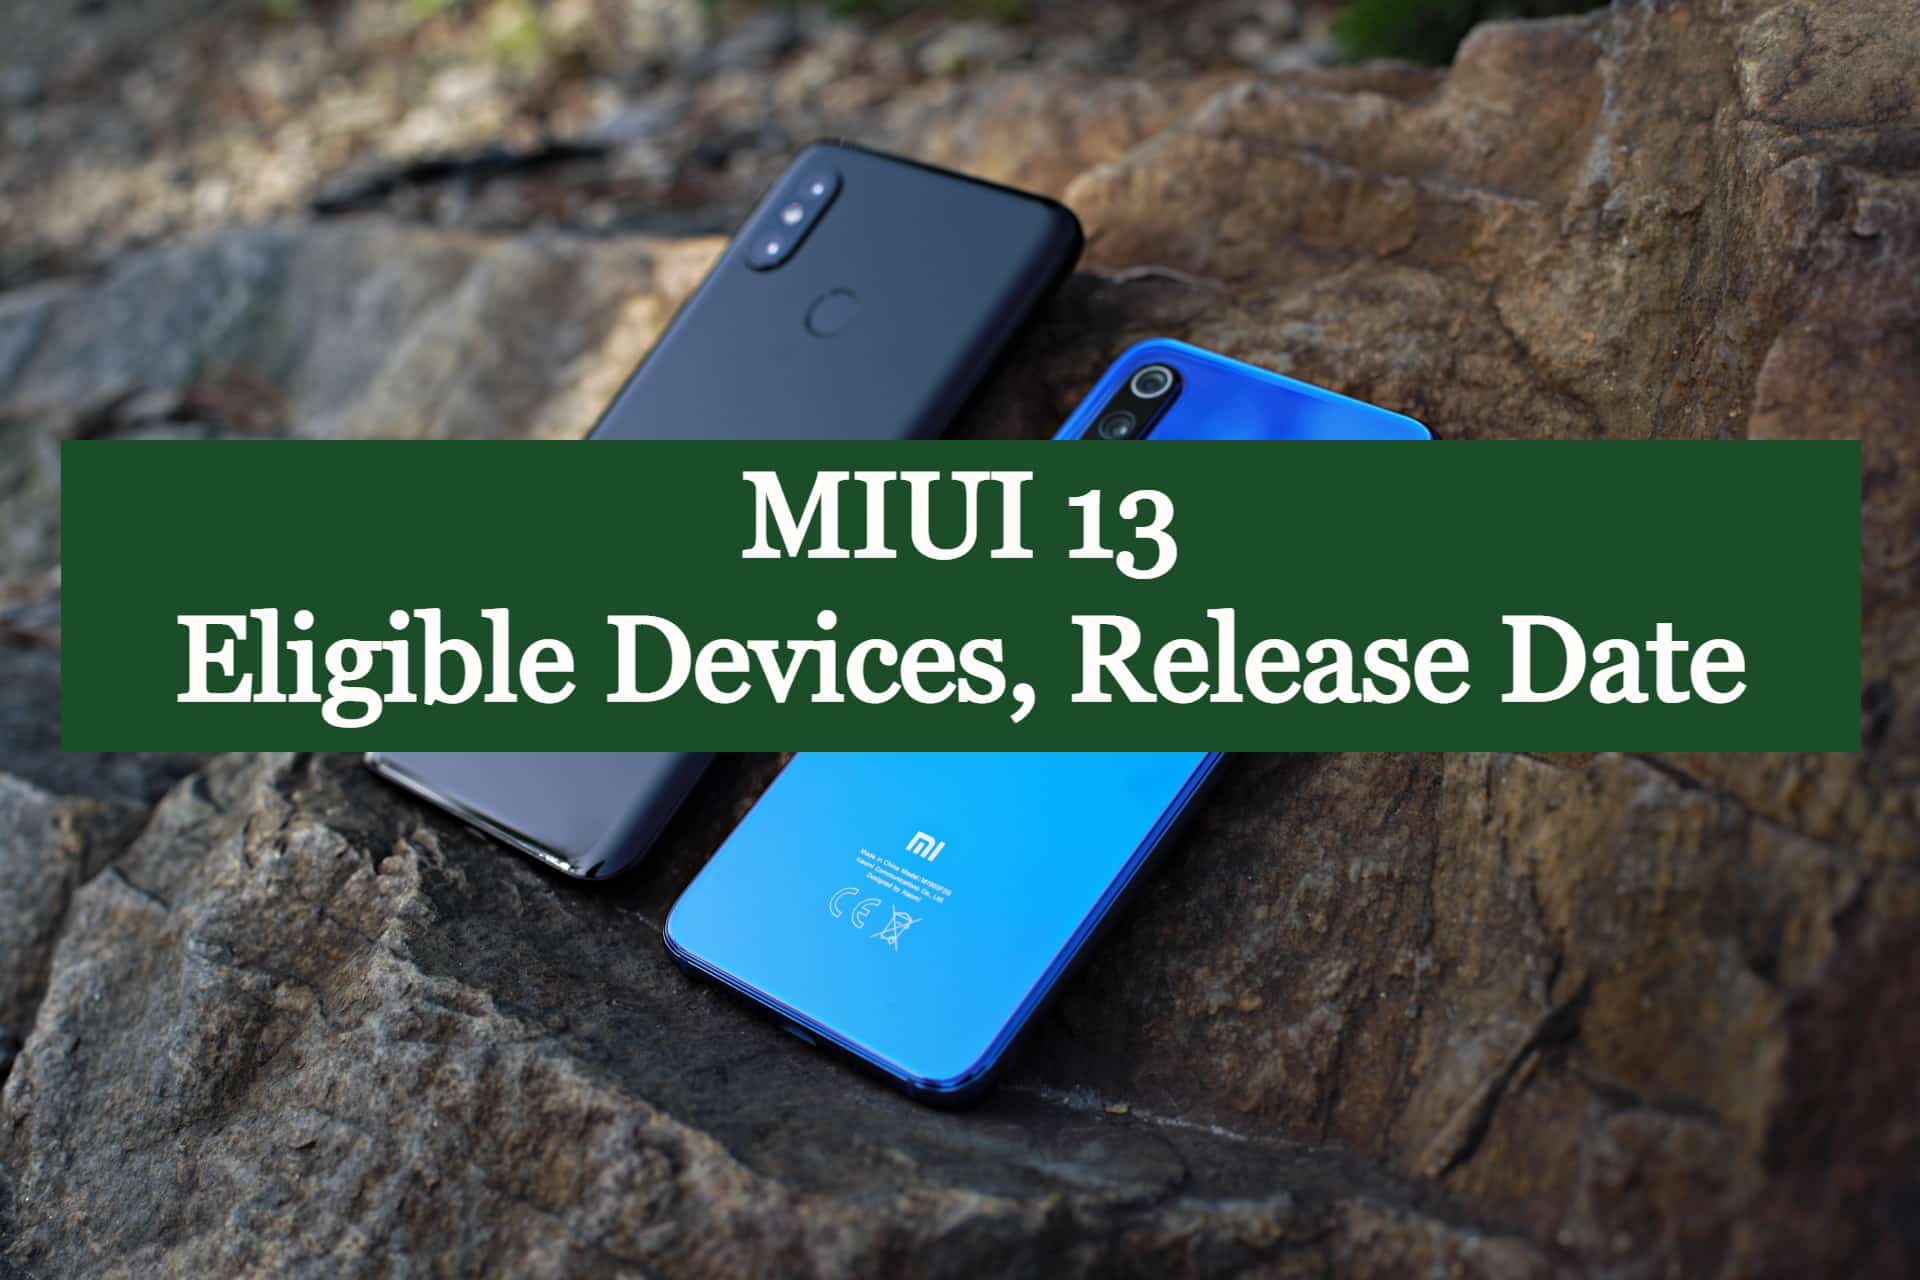 Xiaomi MIUI 13 Eligible devices, release date